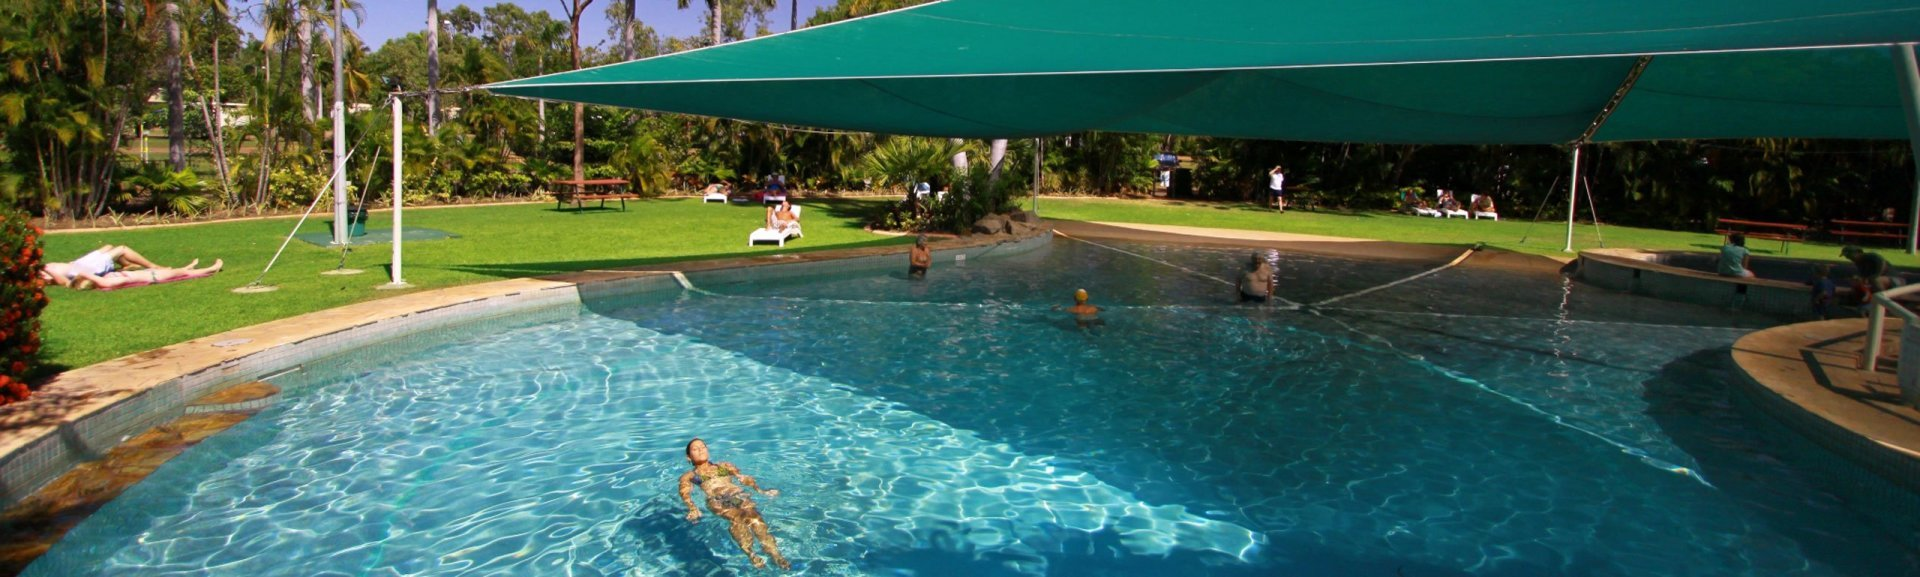 Kakadu Lodge swimming pool and gardens. Photo by Kakadu Lodge.